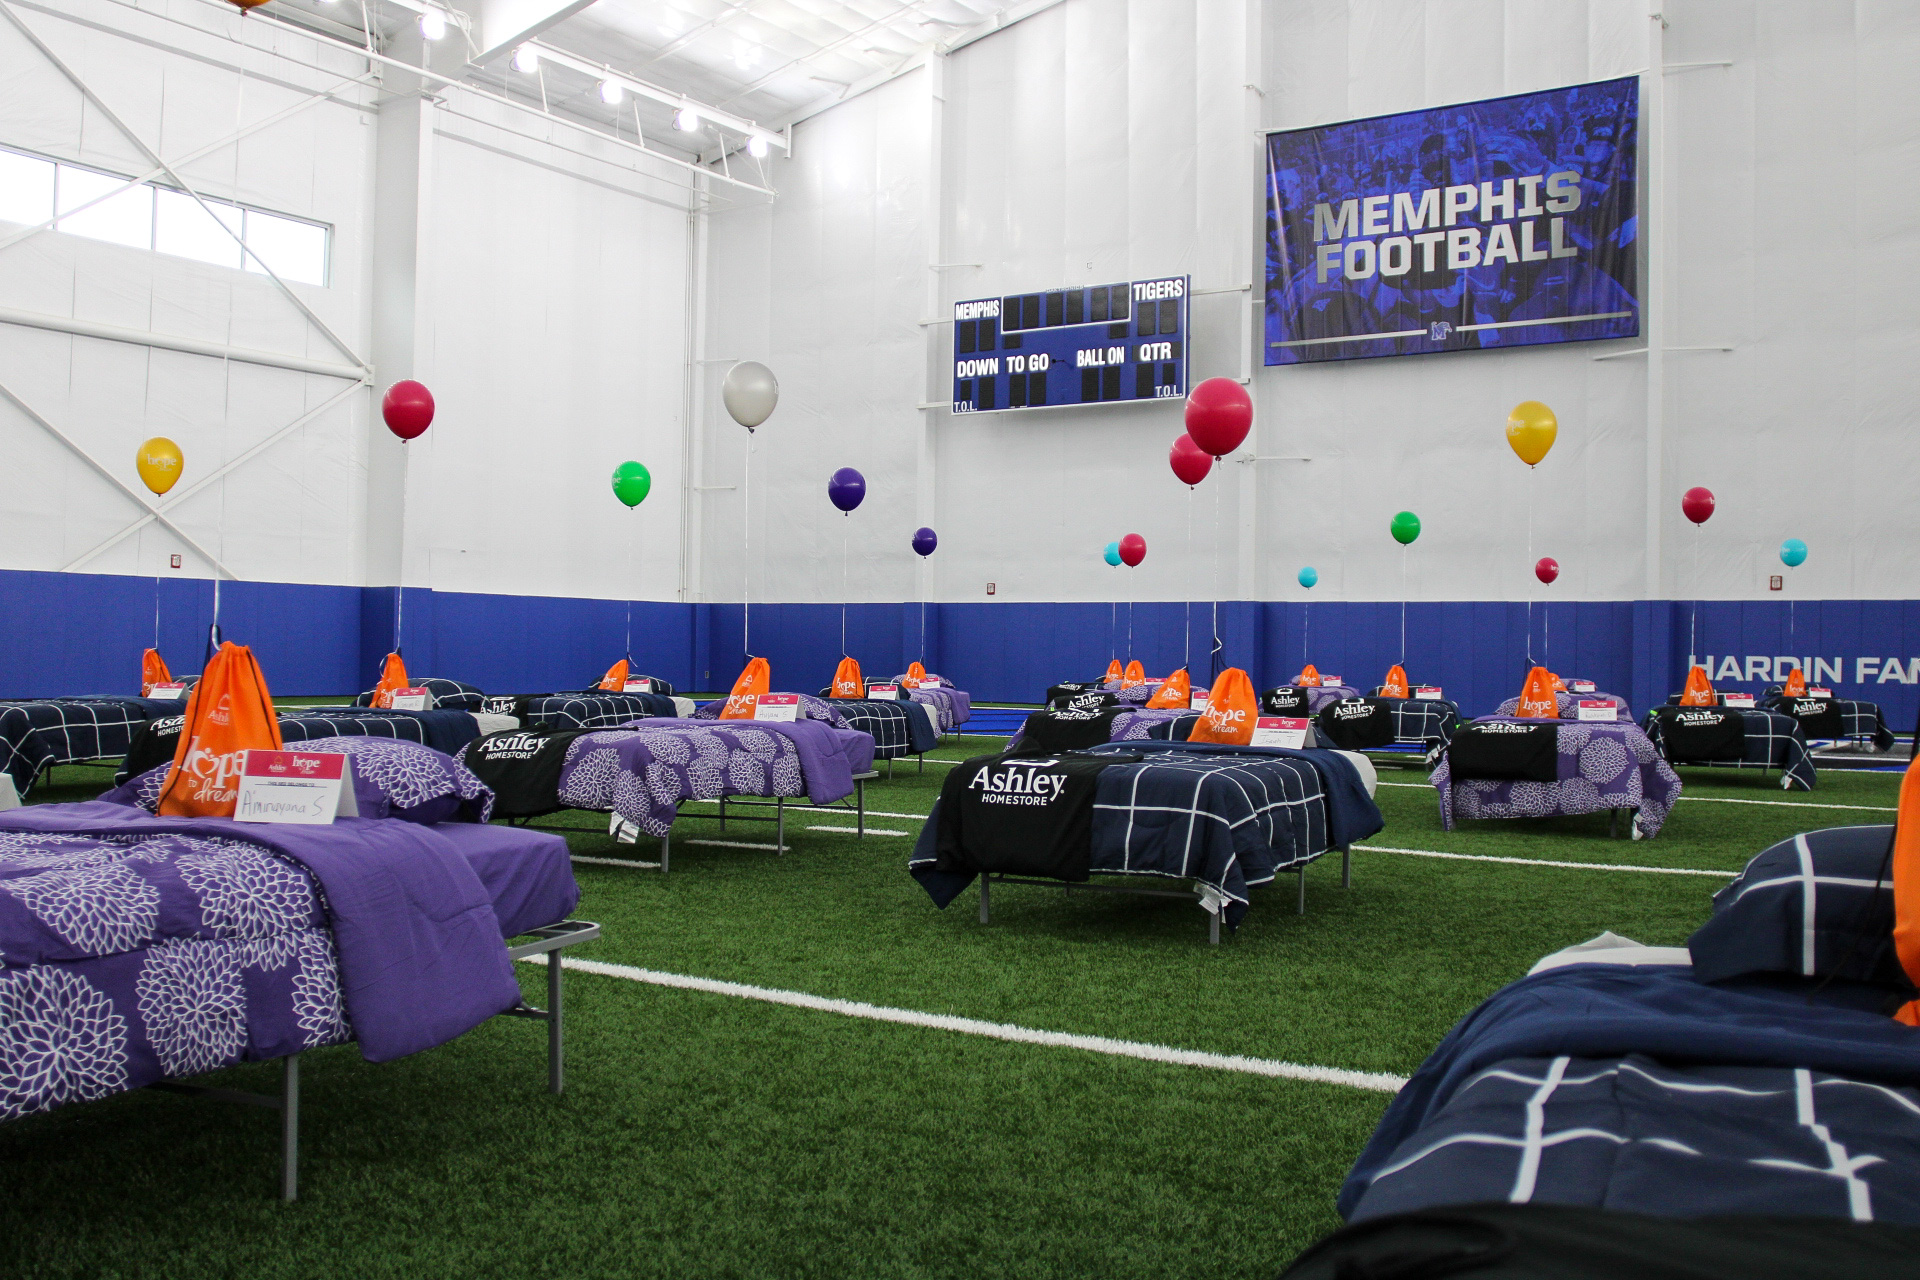 Kids get time with Tigers football players, and receive restful gifts